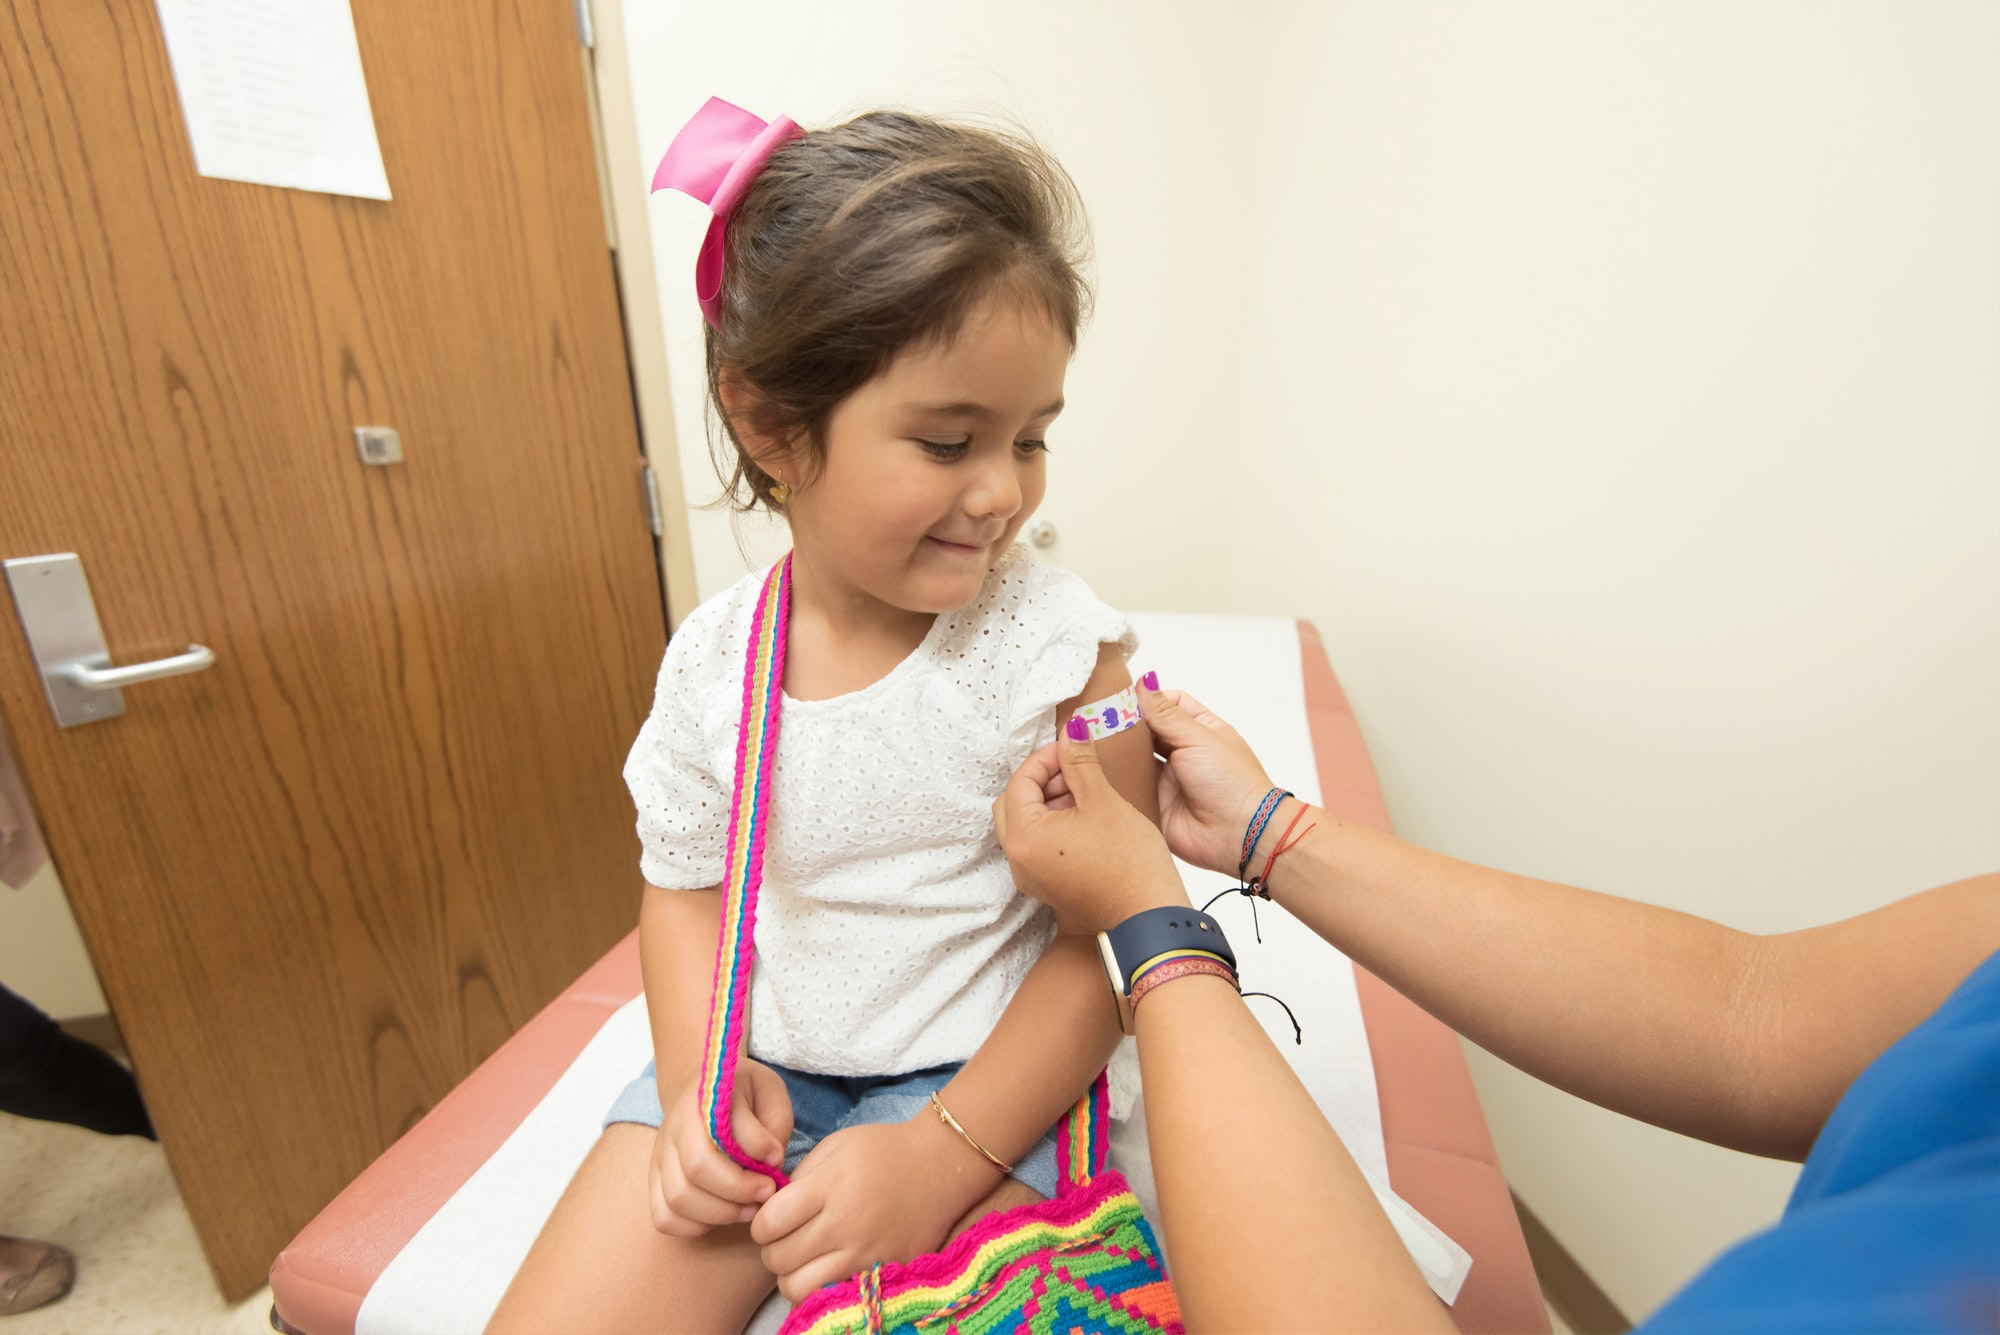 In this 2017 photo, captured inside a clinical setting, a health care provider was placing a bandage on the injection site of a child, who had just received a seasonal influenza vaccine. Children younger than 5-years-old, and especially those younger than 2-years-old, are at high risk of developing serious flu-related complications. A flu vaccine offers the best defense against flu, and its potentially serious consequences, and can also reduce the spread of flu to others.